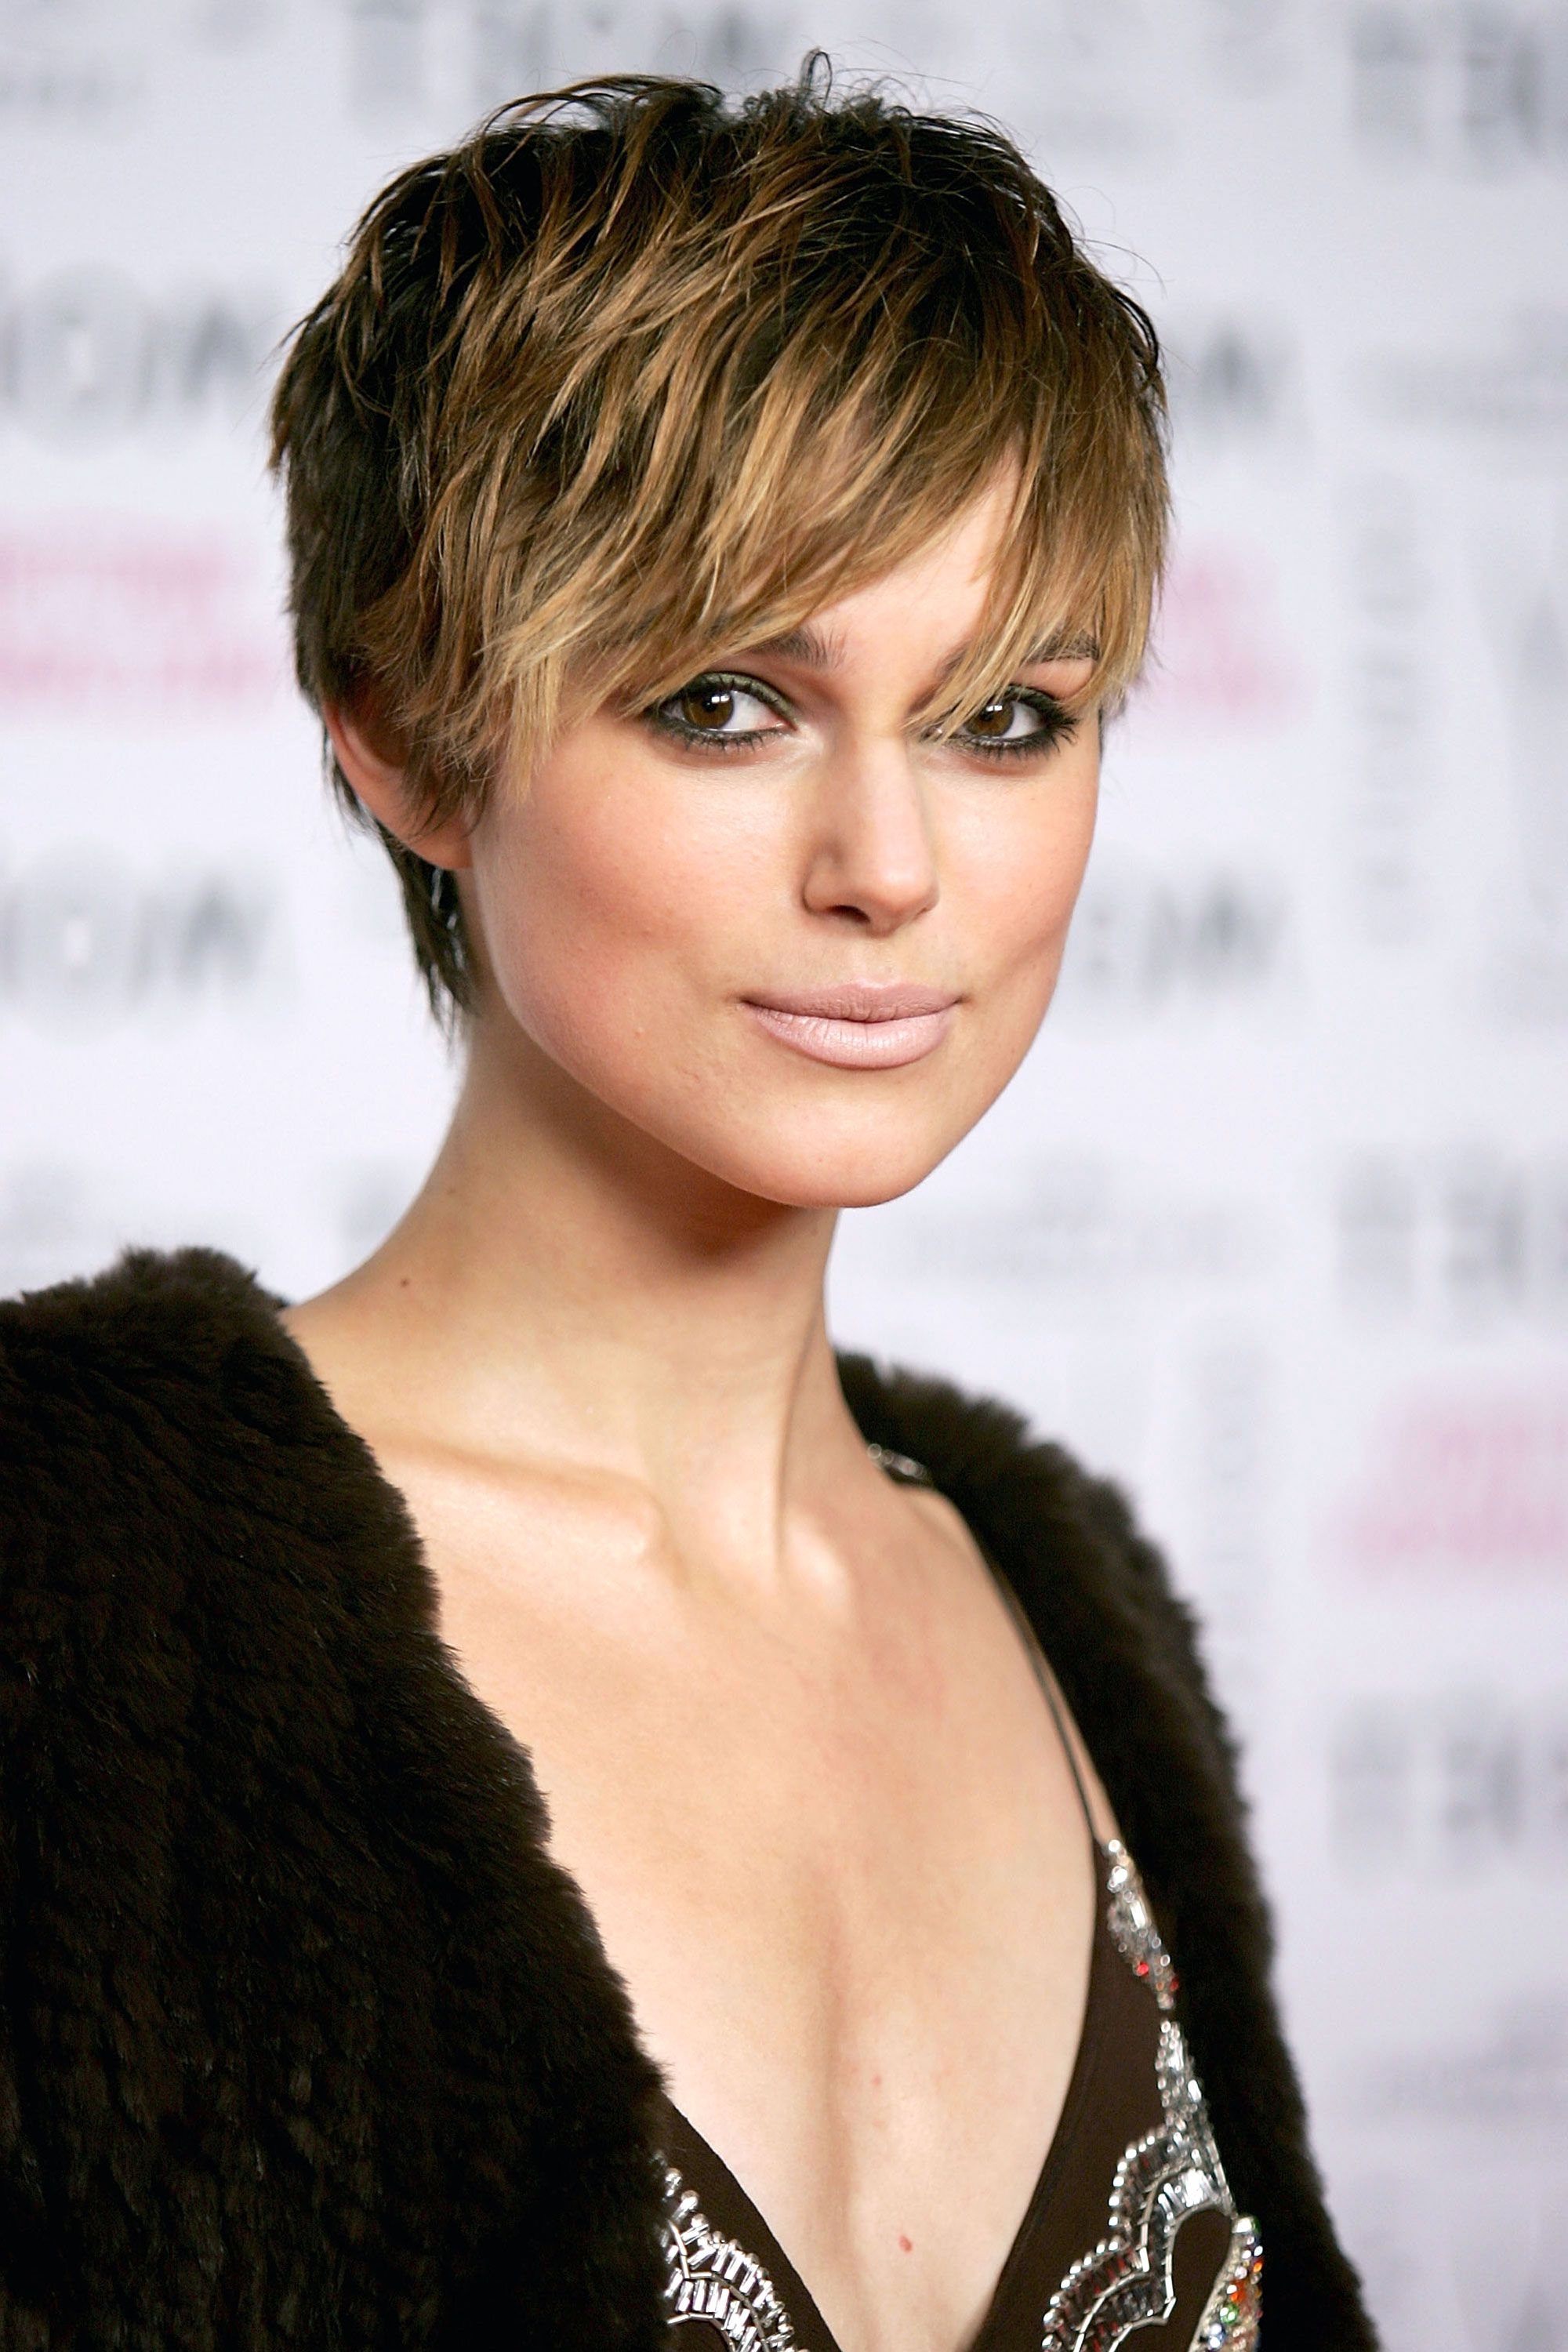 The Top Pixie Haircuts Of All Time | Short Hair | Pinterest | Hair In Keira Knightley Short Hairstyles (View 2 of 25)